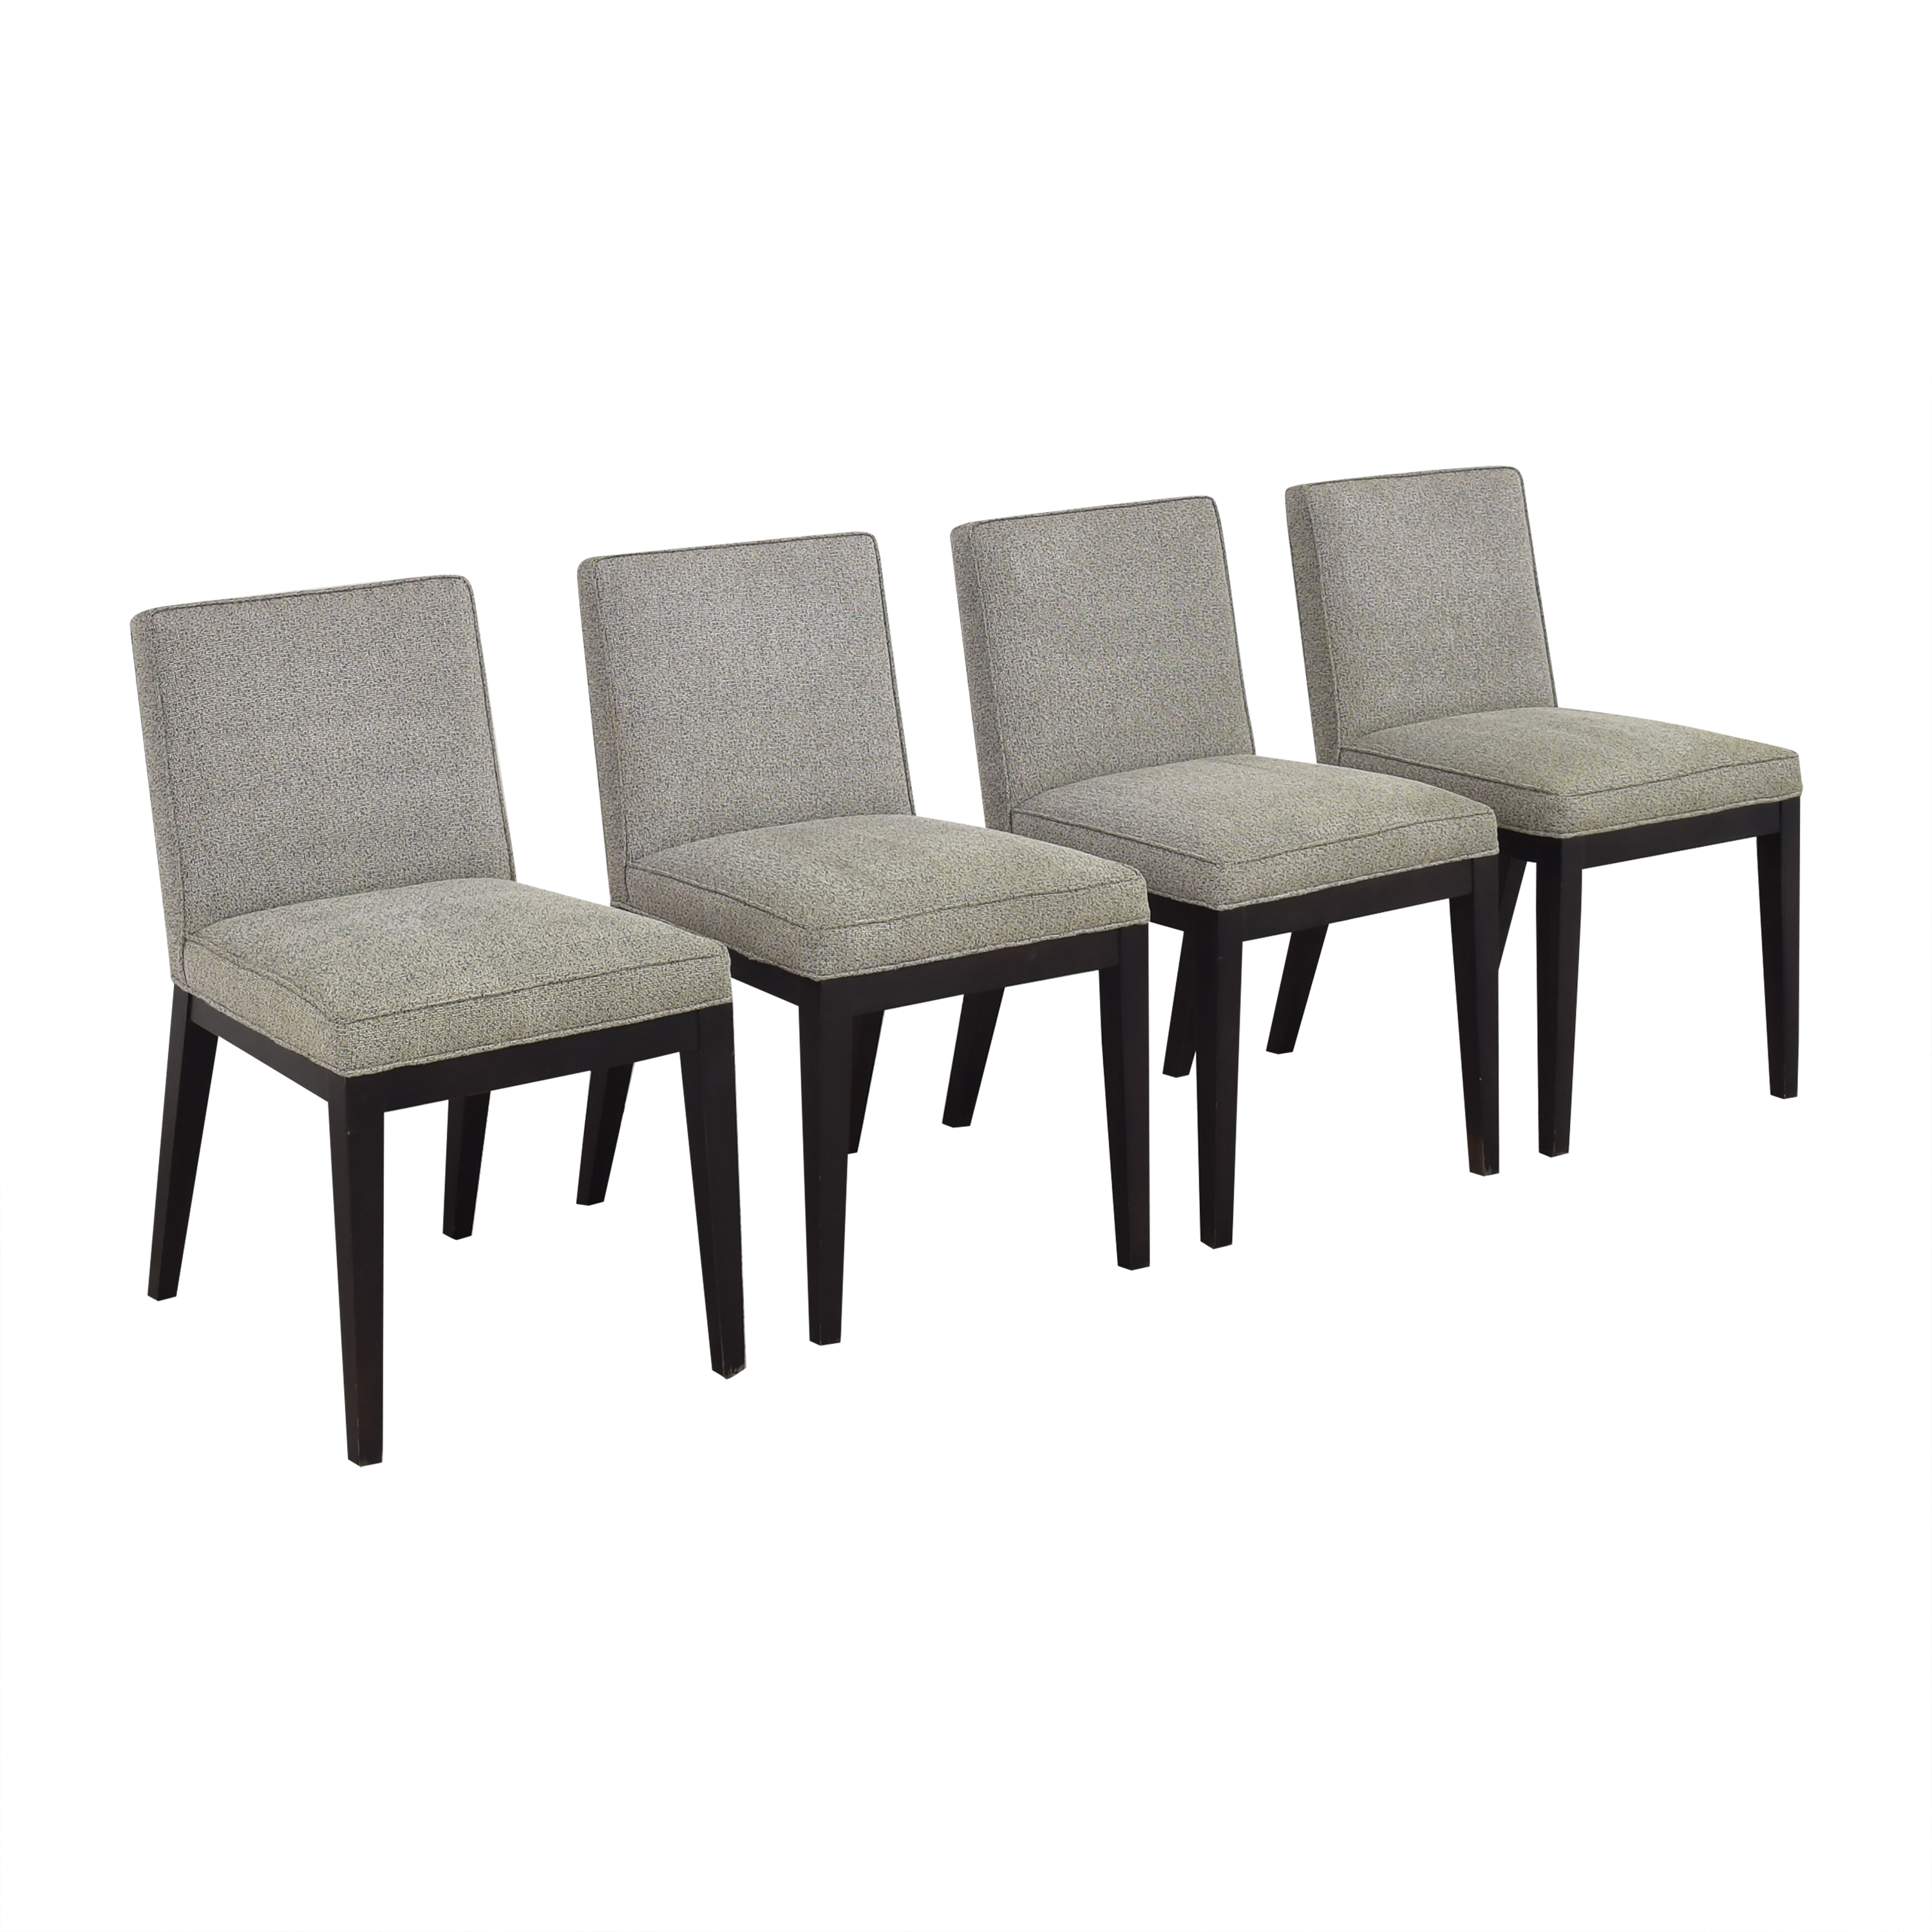 shop Room & Board Ansel Dining Side Chairs Room & Board Dining Chairs